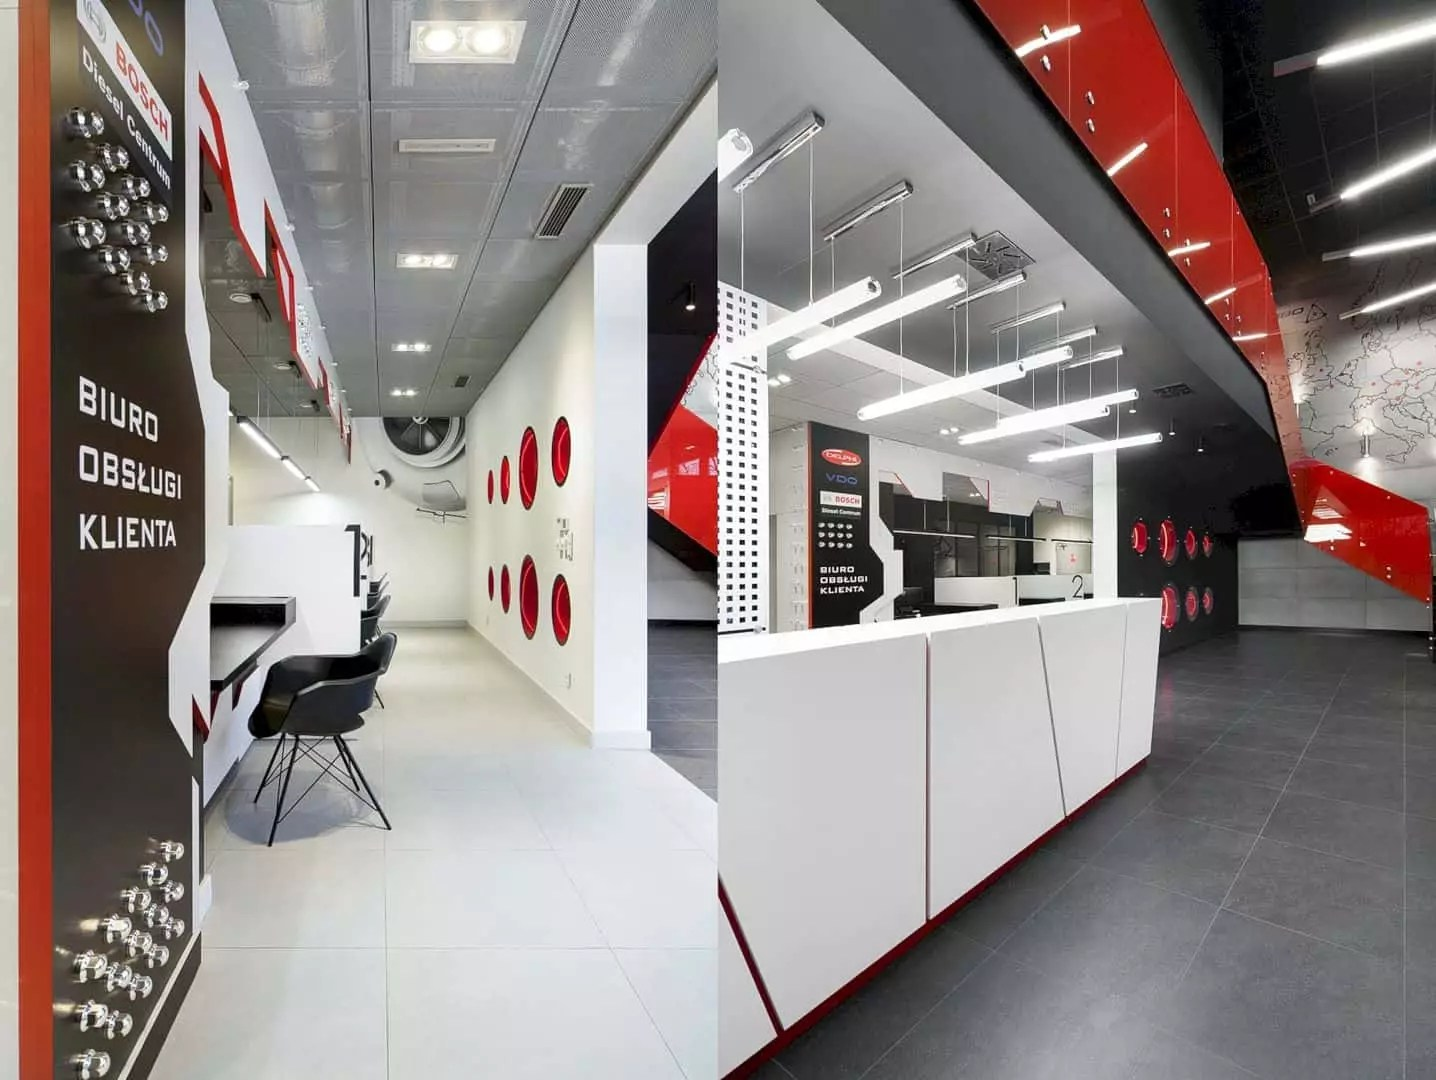 Turbo Tec: Modern Interior Design and Color Identity for One of the Largest Independent Companies in Europe